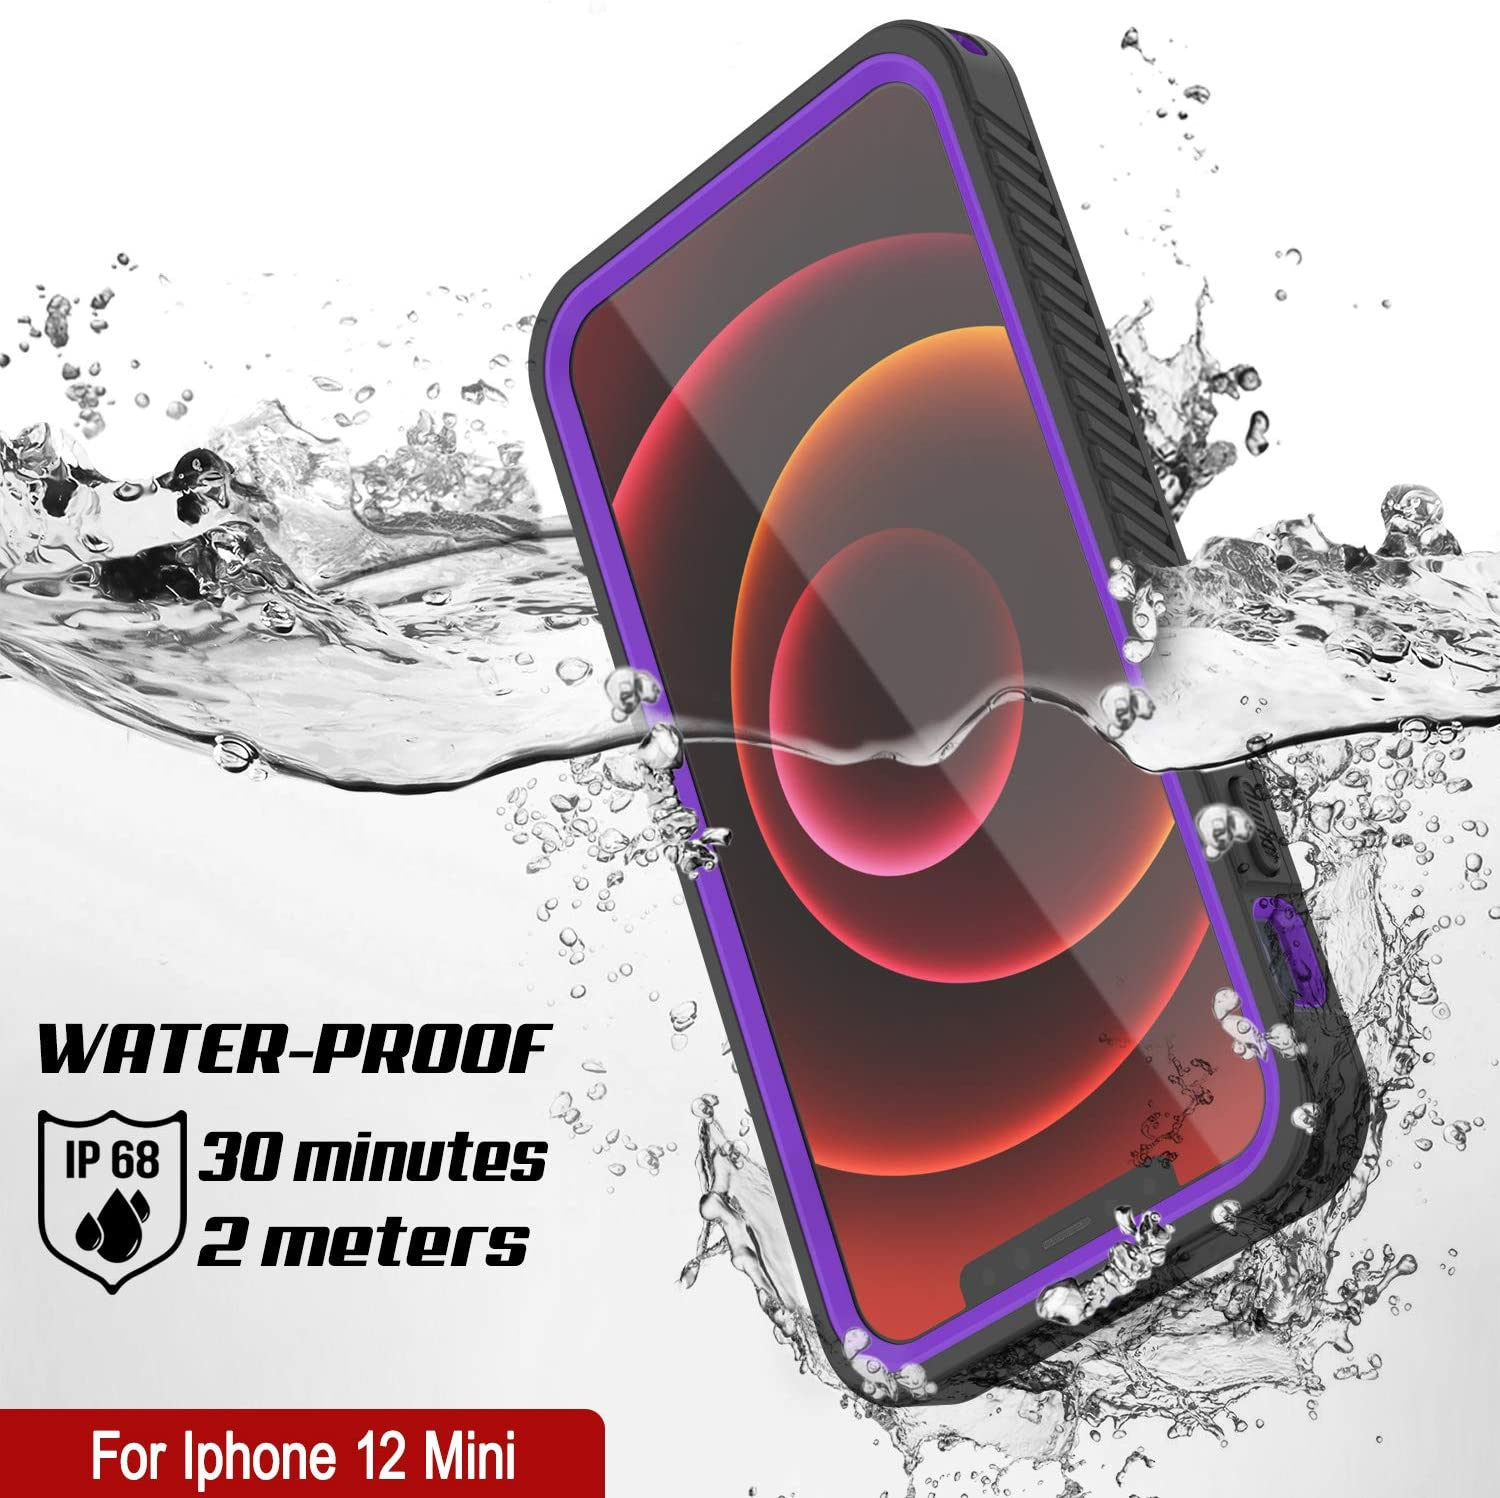 iPhone 12 Mini Waterproof Case, Punkcase [Extreme Series] Armor Cover W/ Built In Screen Protector [Purple]